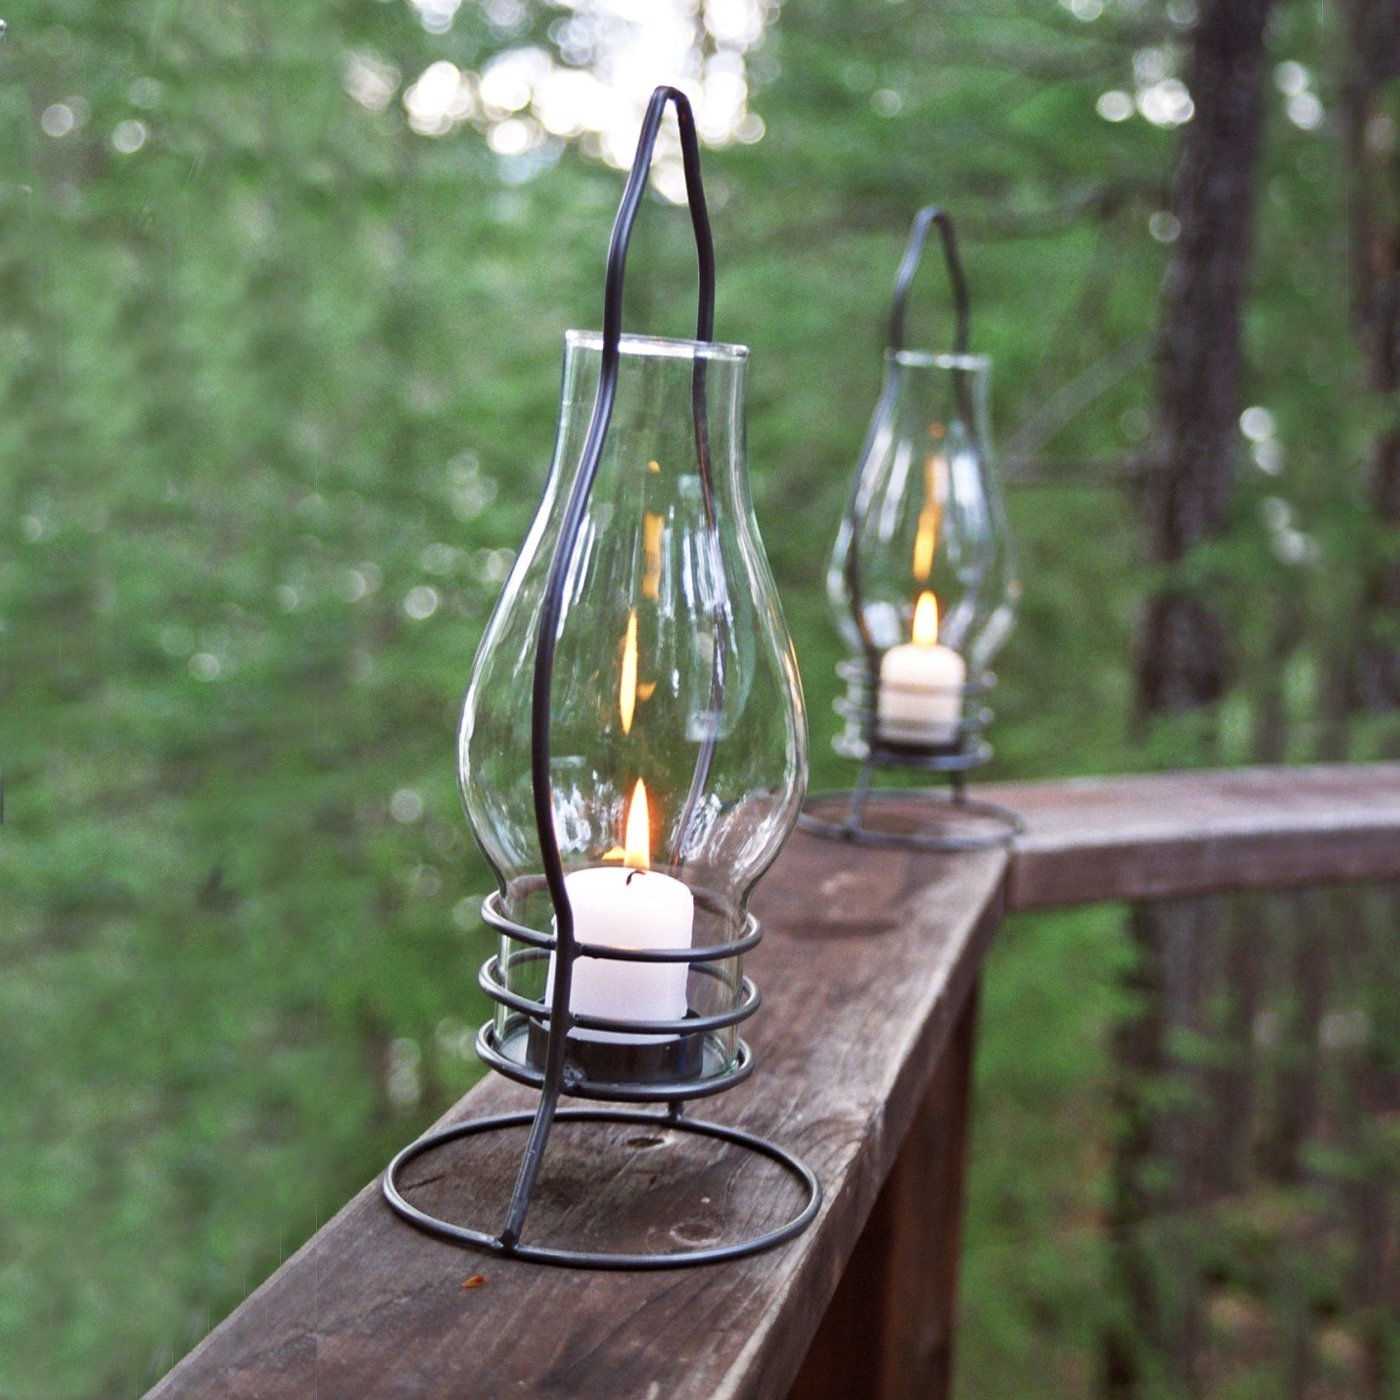 Current Pangaea Home And Garden Fm C2350 Iron Outdoor Table Lantern #themine With Regard To Outdoor Table Lanterns (View 2 of 20)